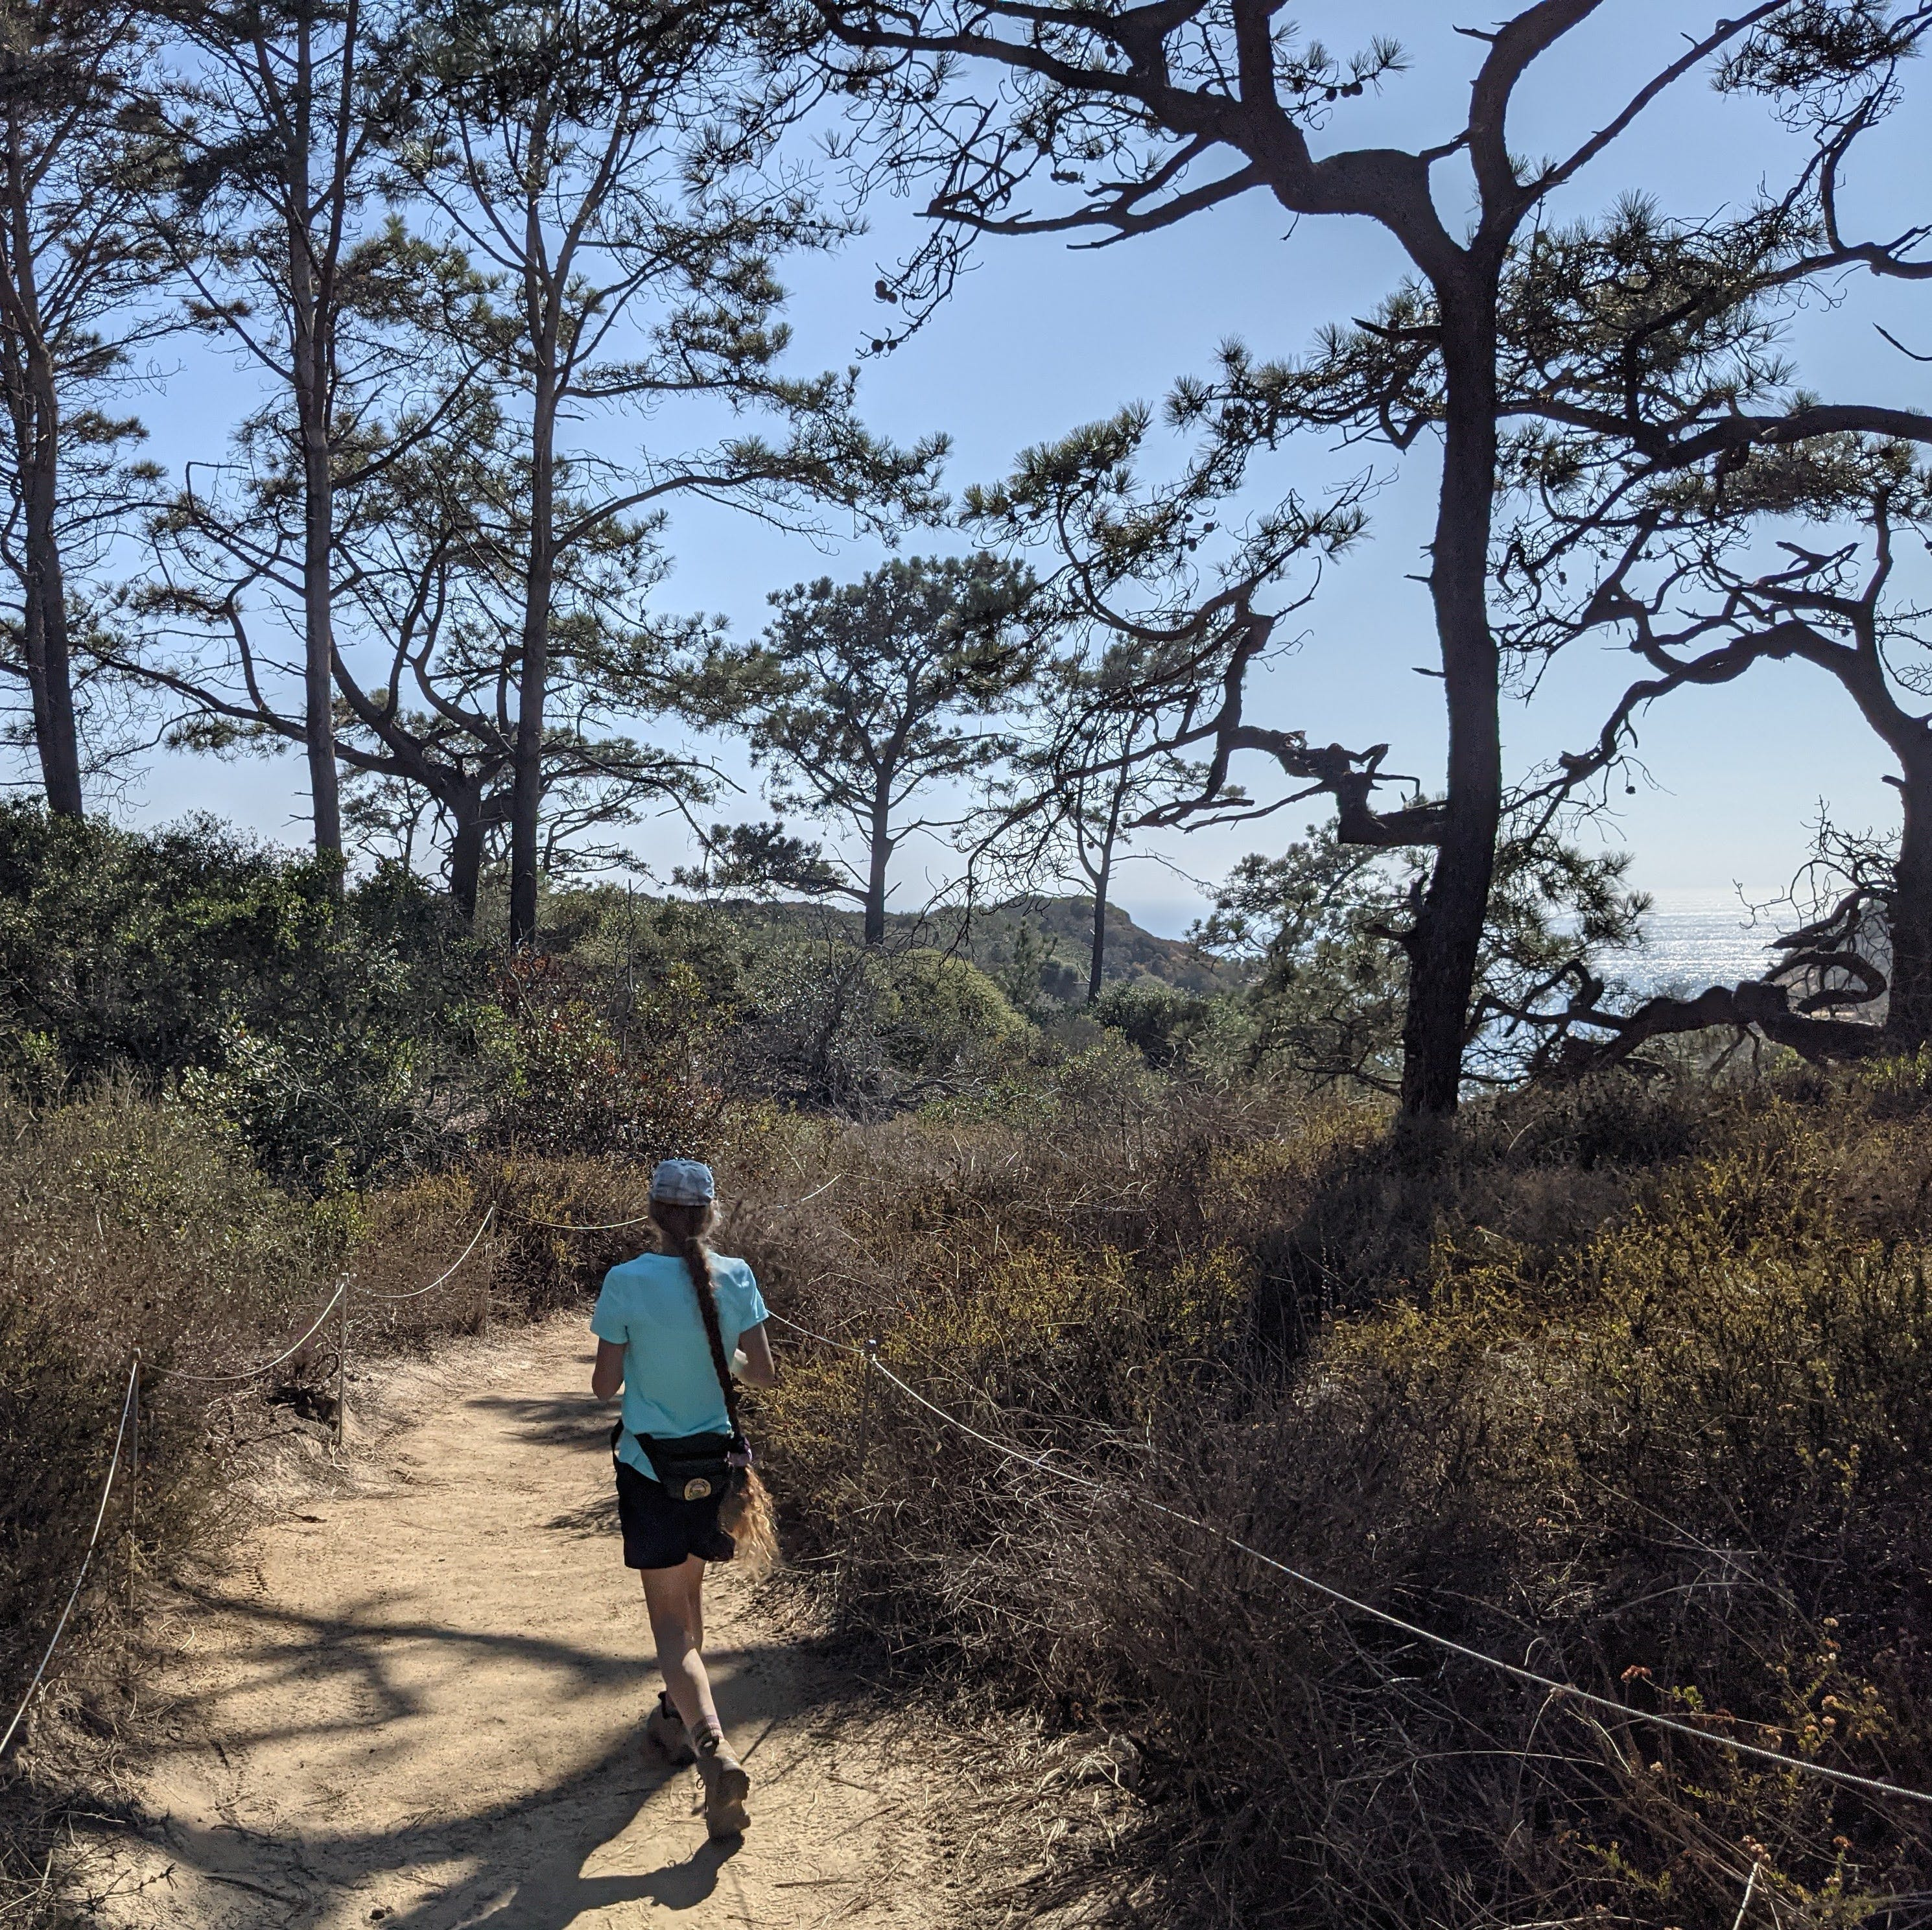 Hiker walking among Torrey pines at Torrey Pines State Natural Reserve in San Diego County